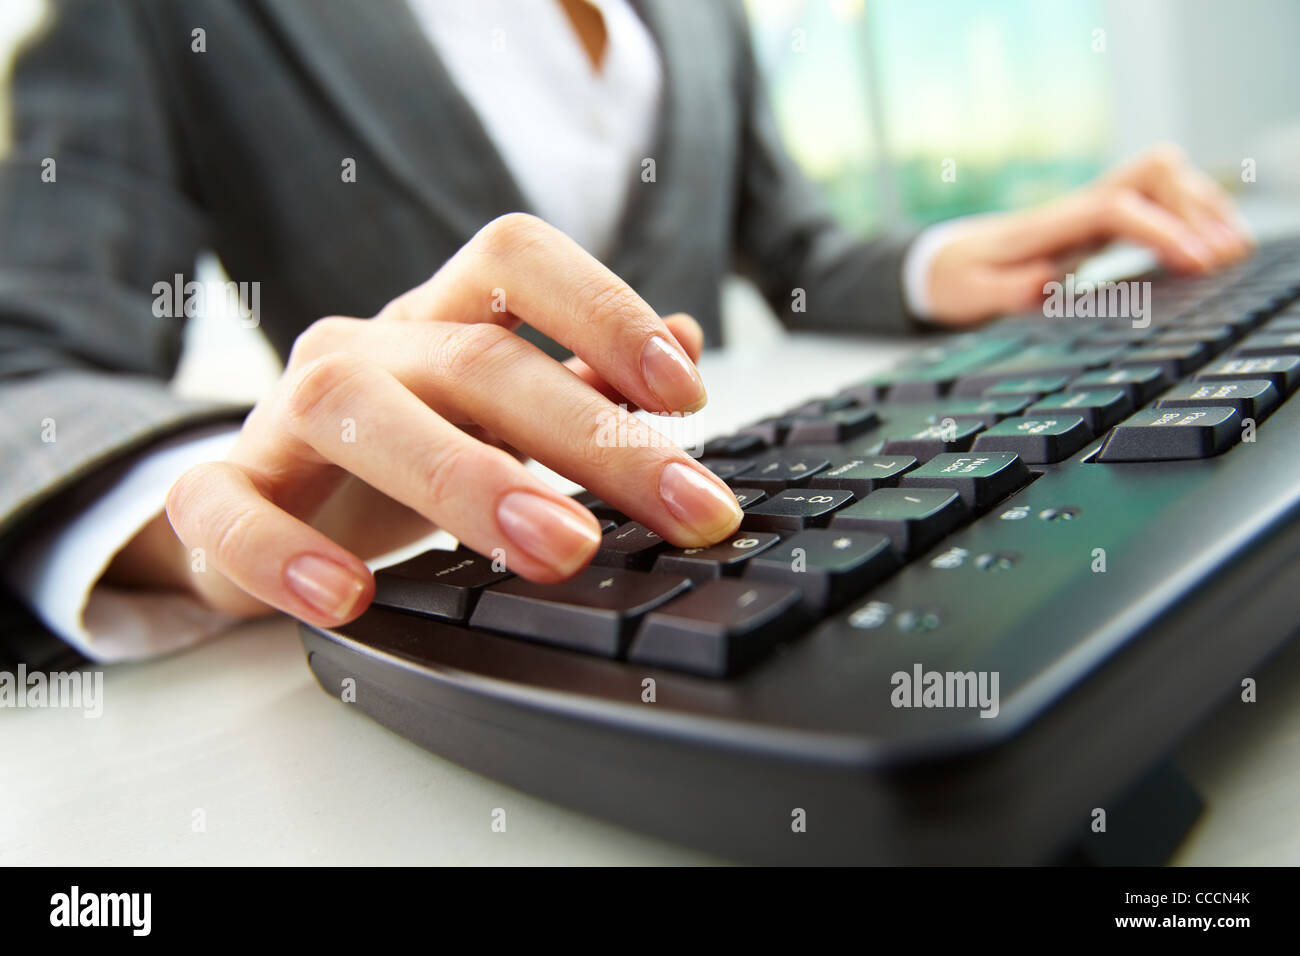 Macro image of human hand with forefinger going to press key on keyboard - Stock Image